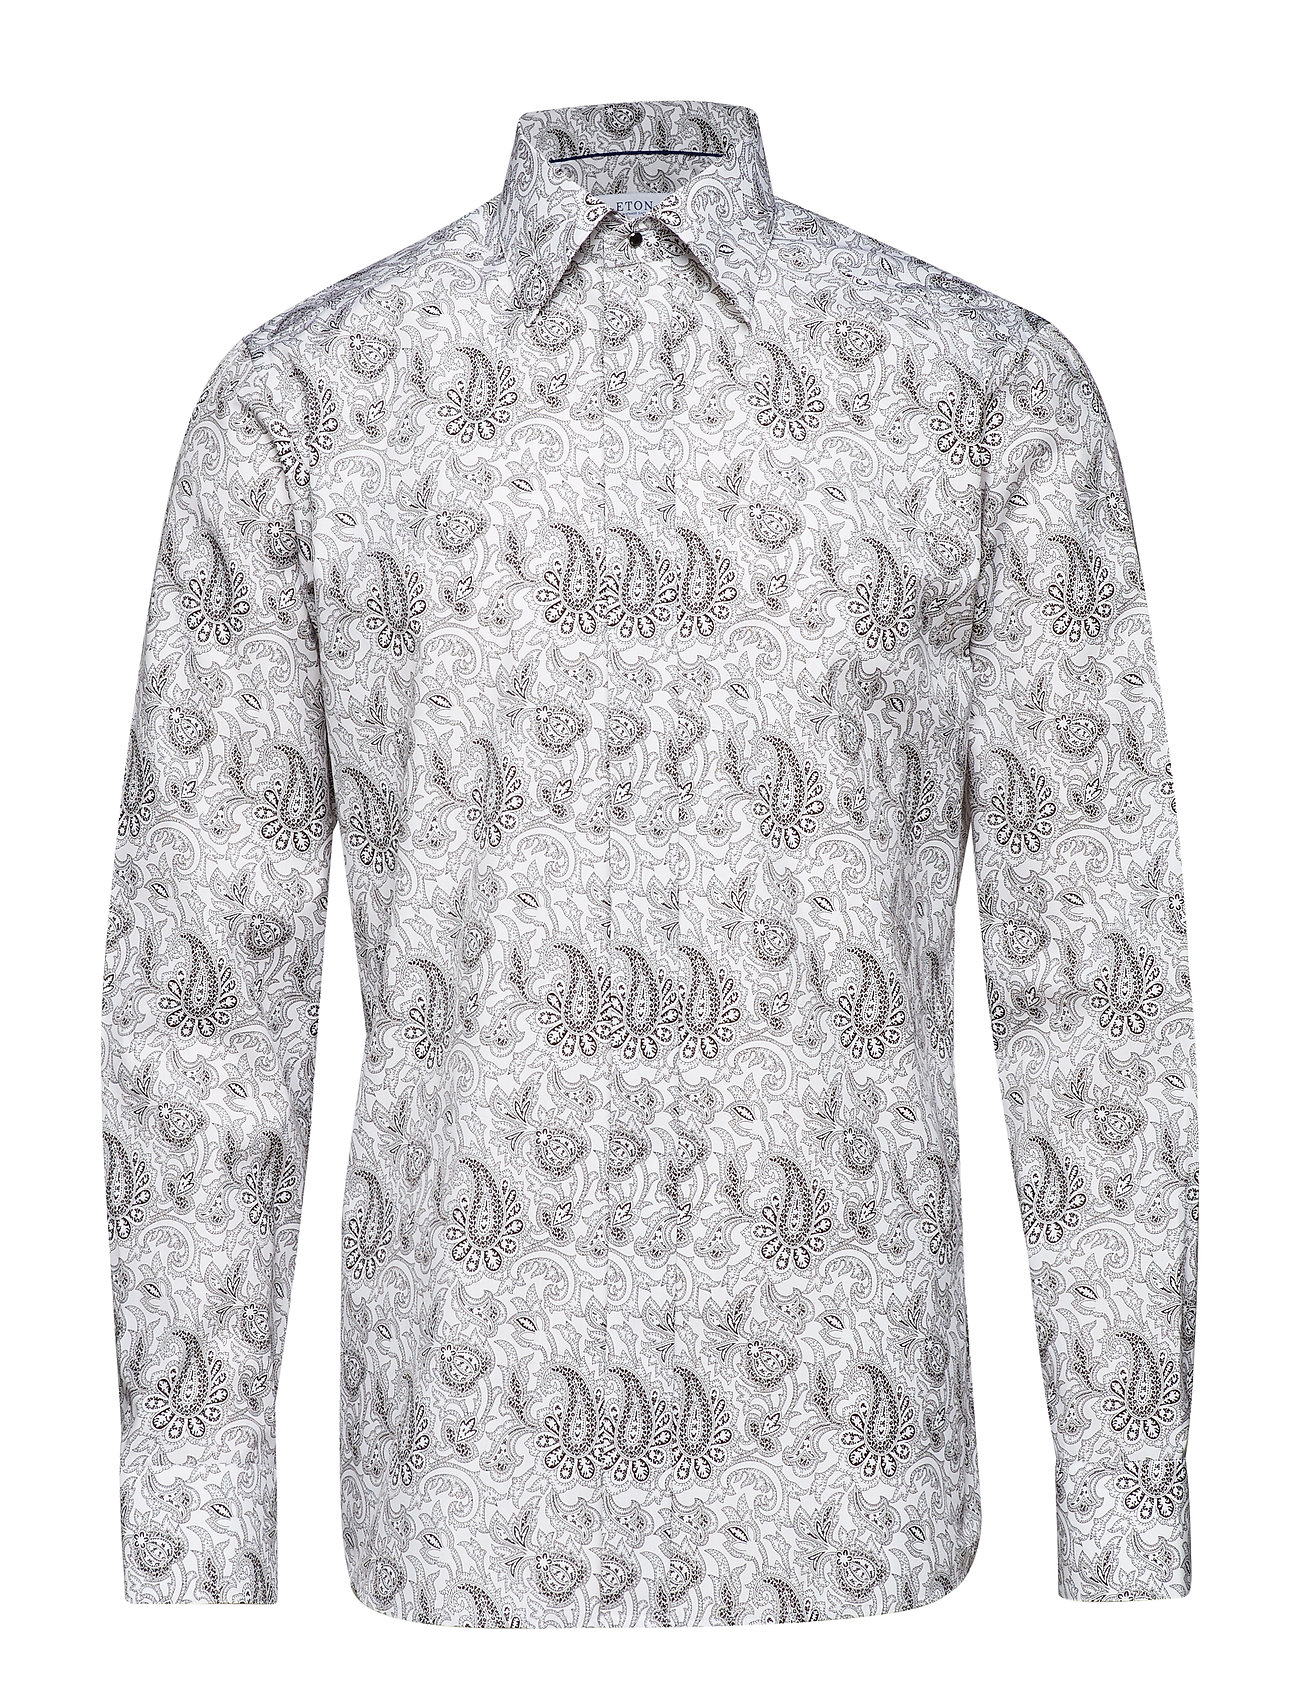 Eton White Paisley Evening Shirt - WHITE